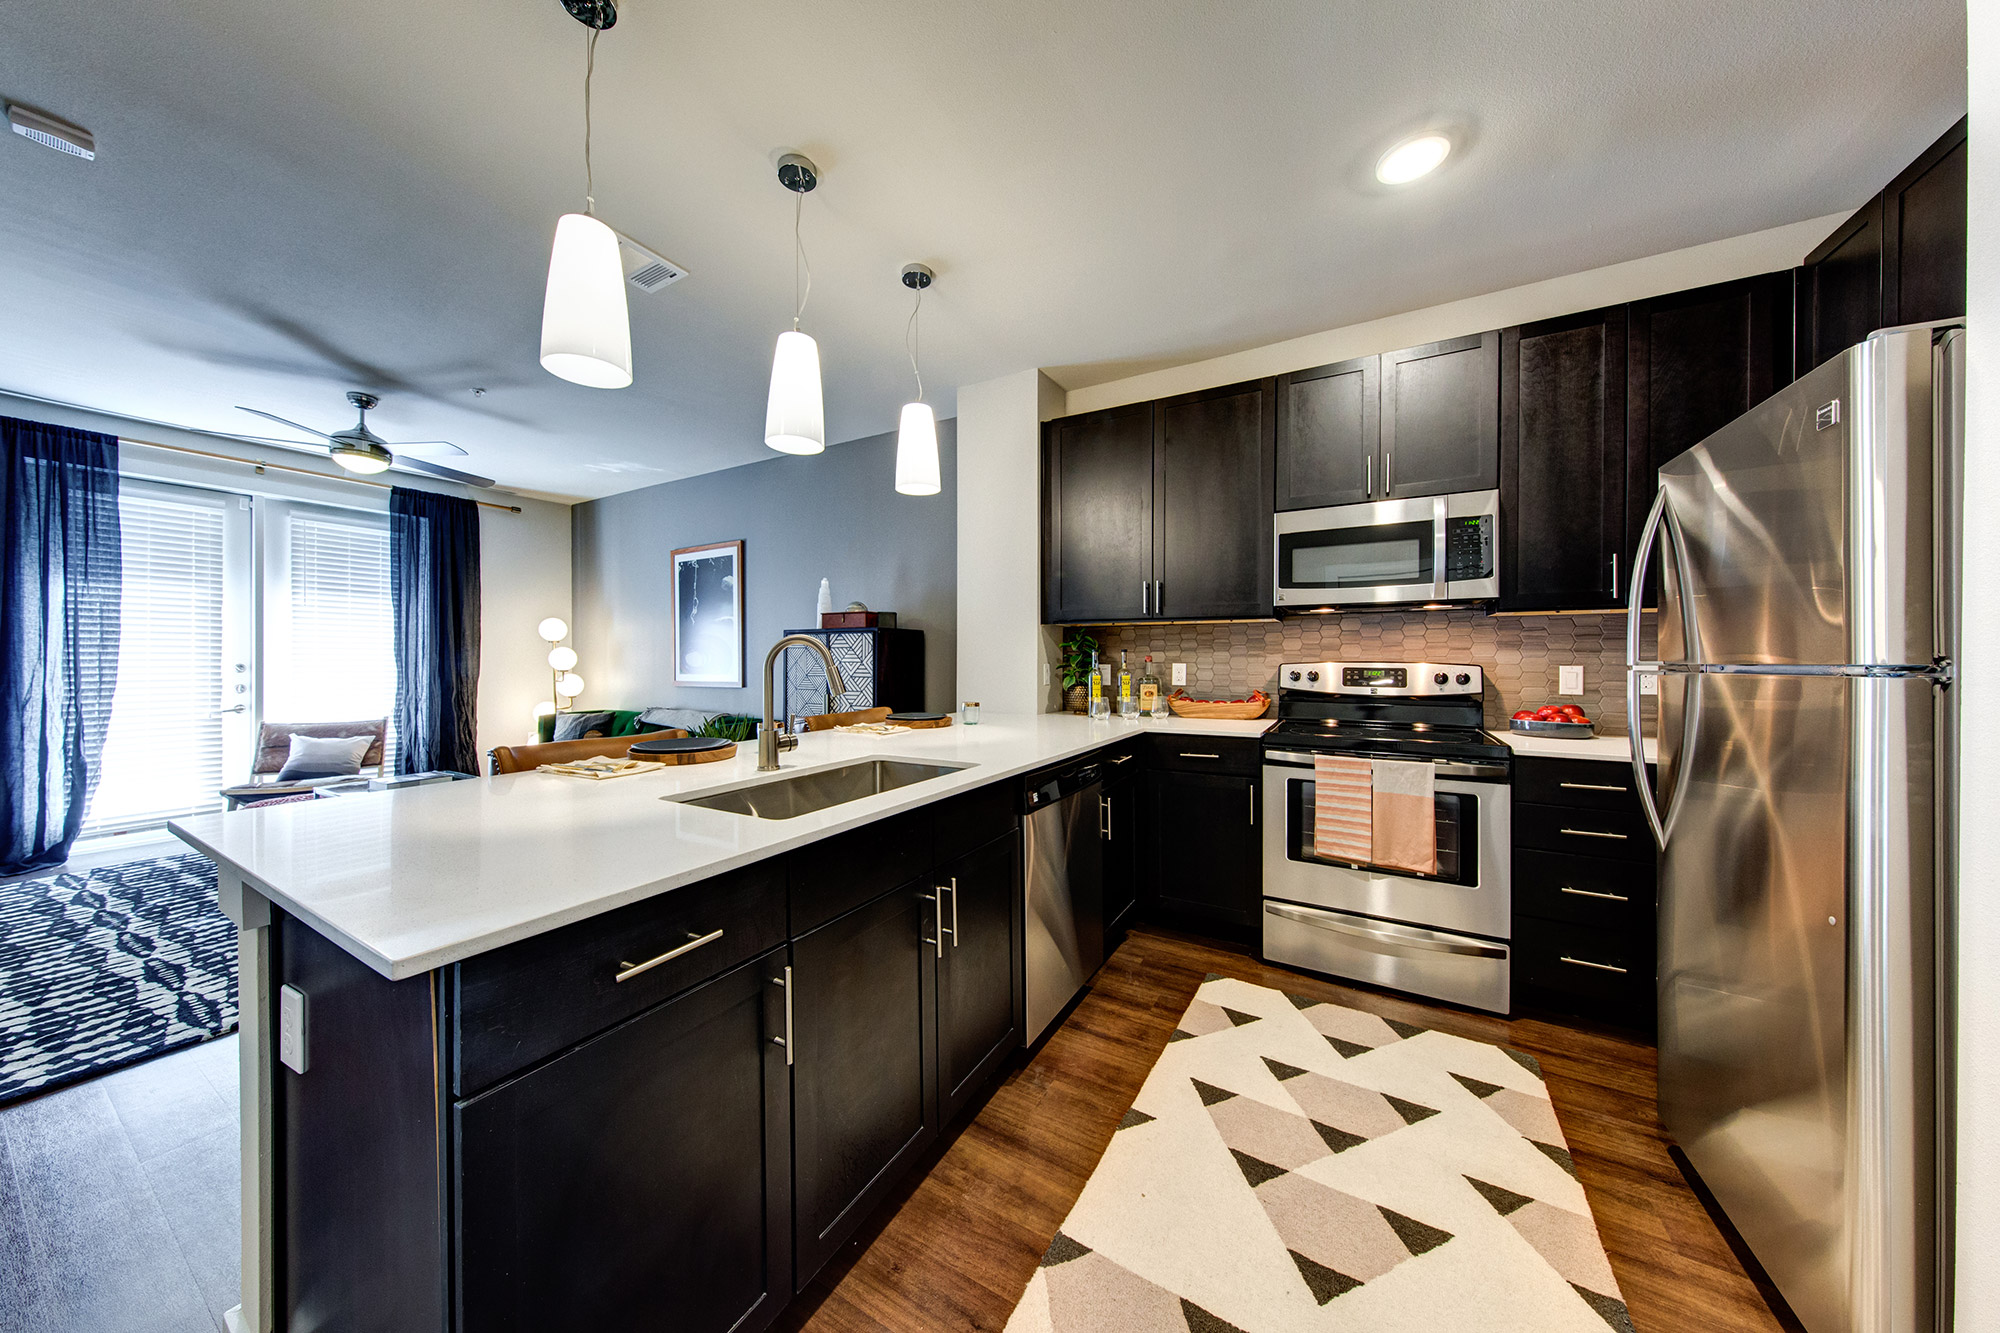 Kitchen with black cabinetry, wood-style floors, stainless steel appliances and quartz countertops that is open to the living room with double patio doors.